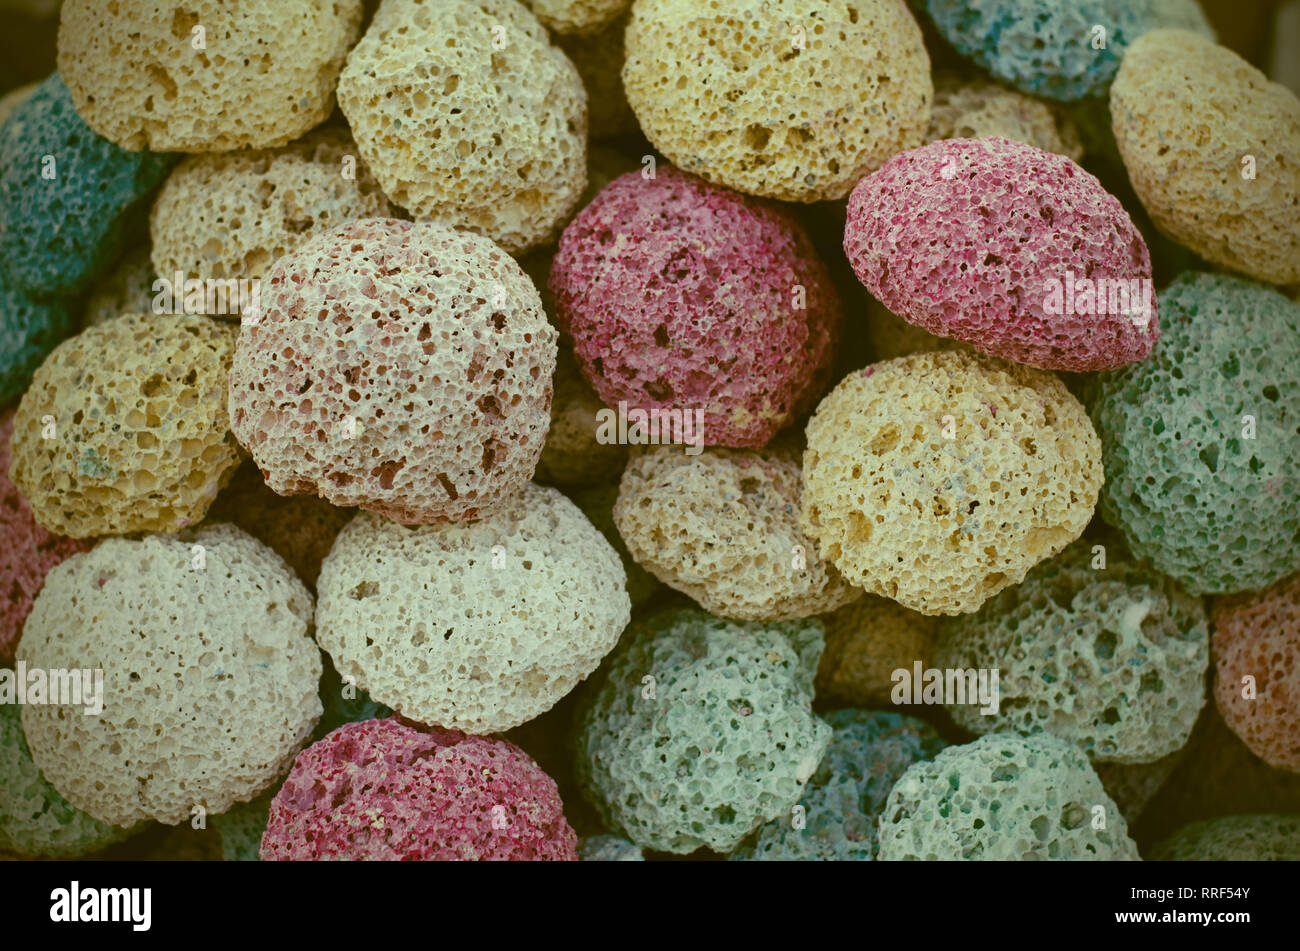 Pumice slices at old egyptian souvenirs market store. - Stock Image